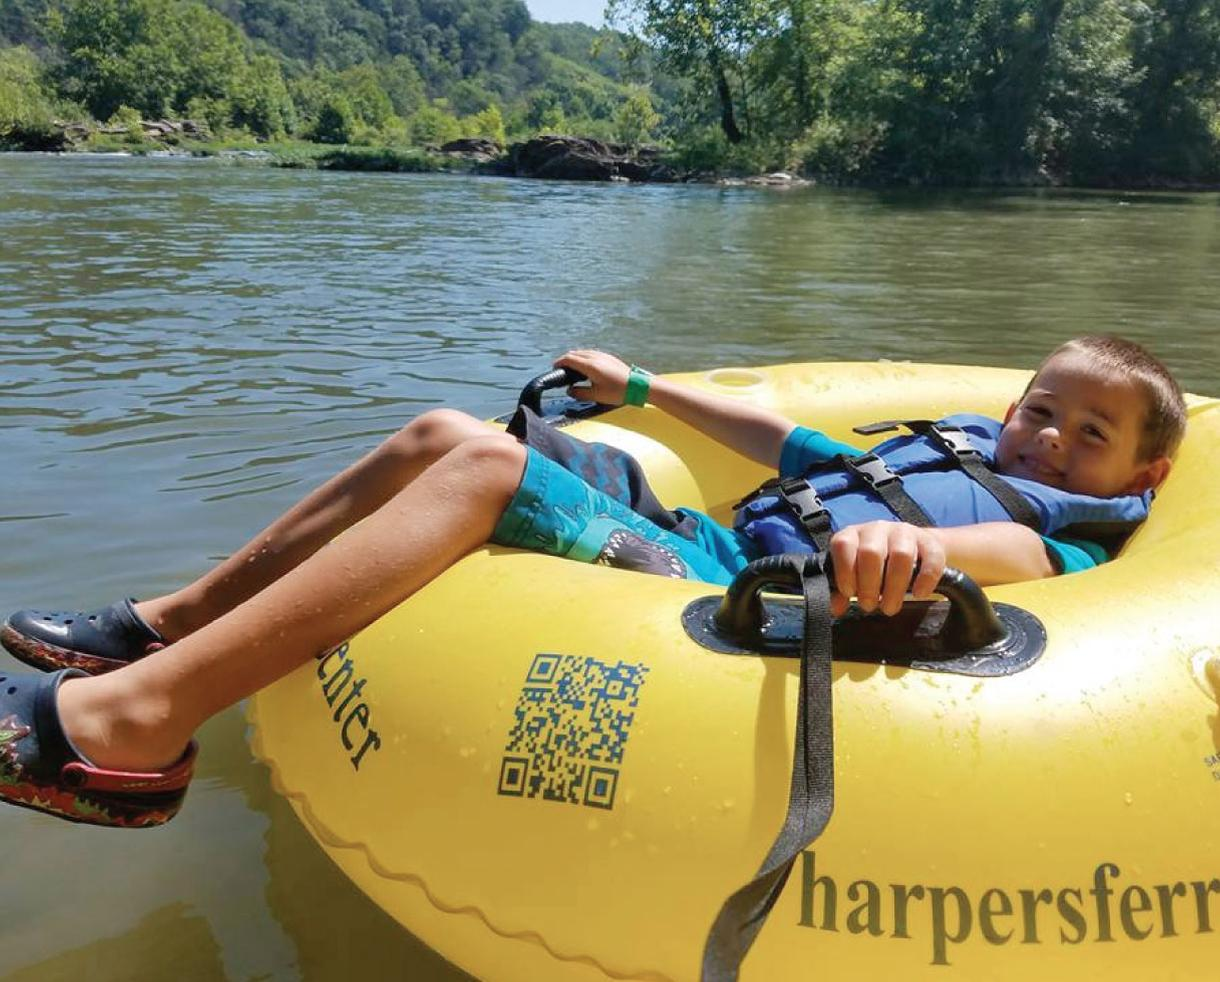 Harpers Ferry Adventure Center River Tubing